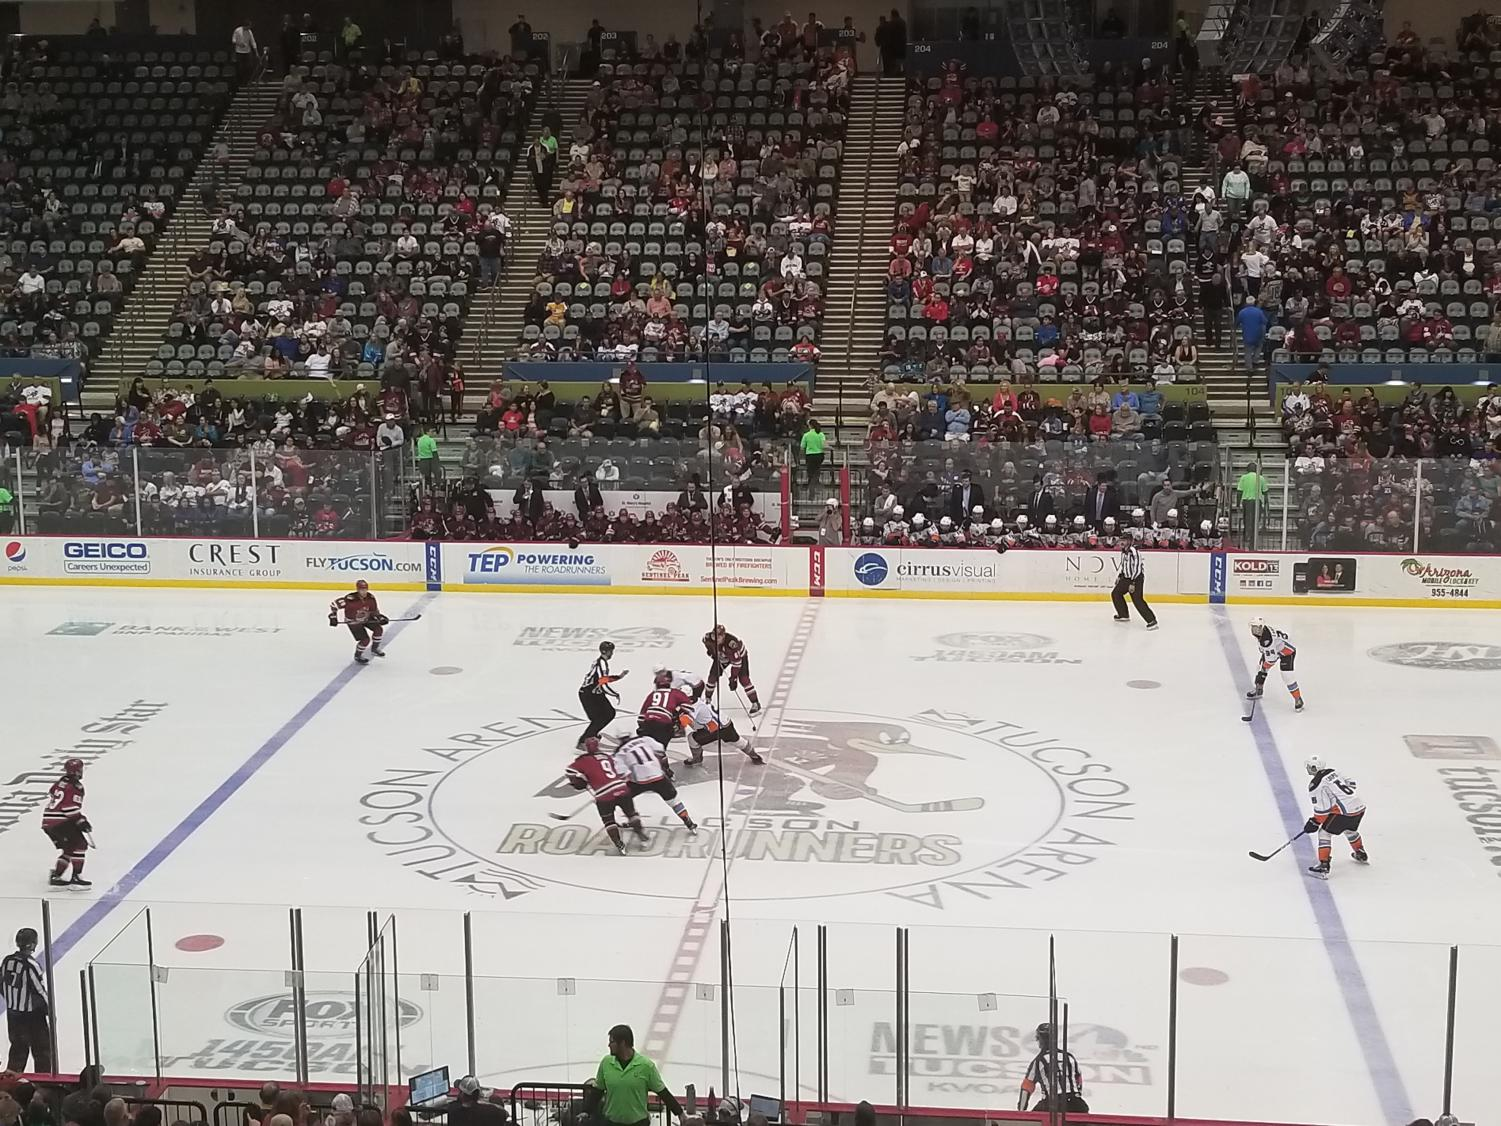 Roadrunners and Gulls at the start of the 3rd period